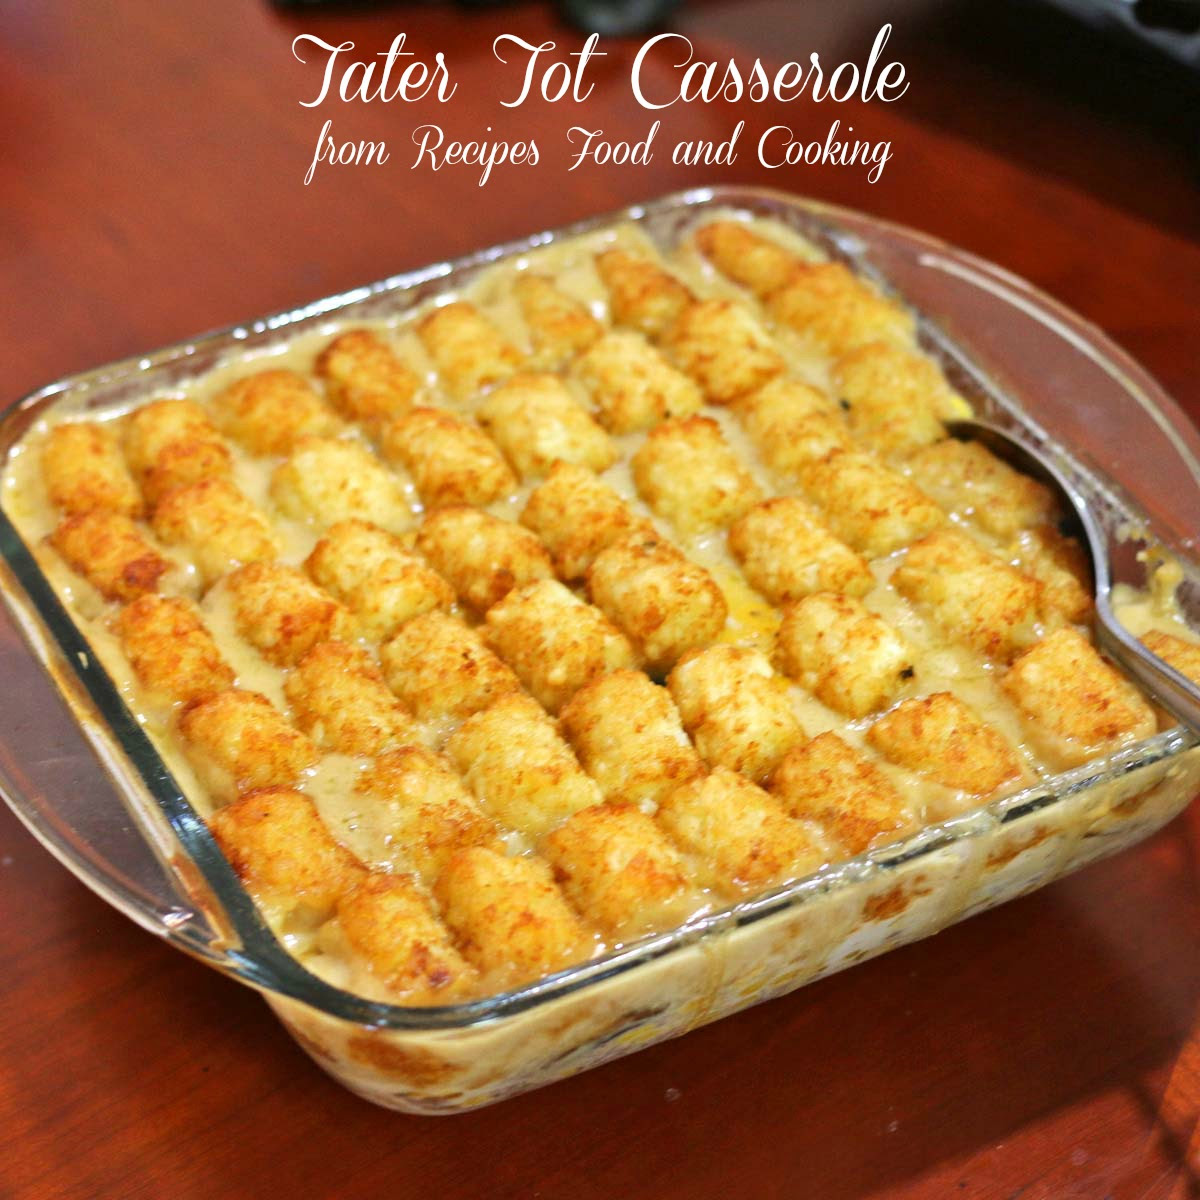 Tater Tot Casserole - Recipes Food and Cooking